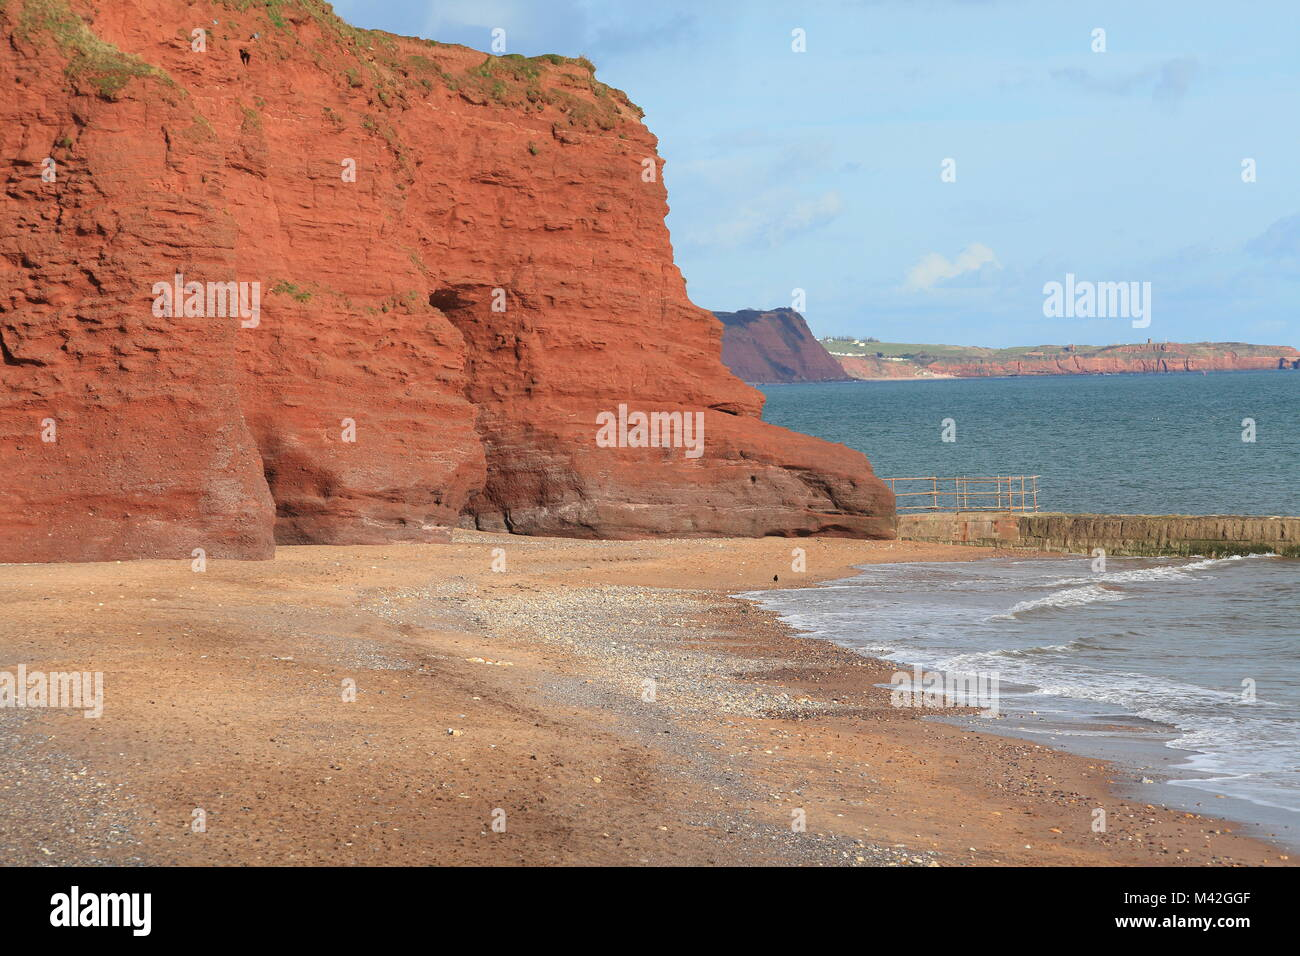 View from Dawlish towards Exmouth Orcombe point, Devon, England, UK - Stock Image